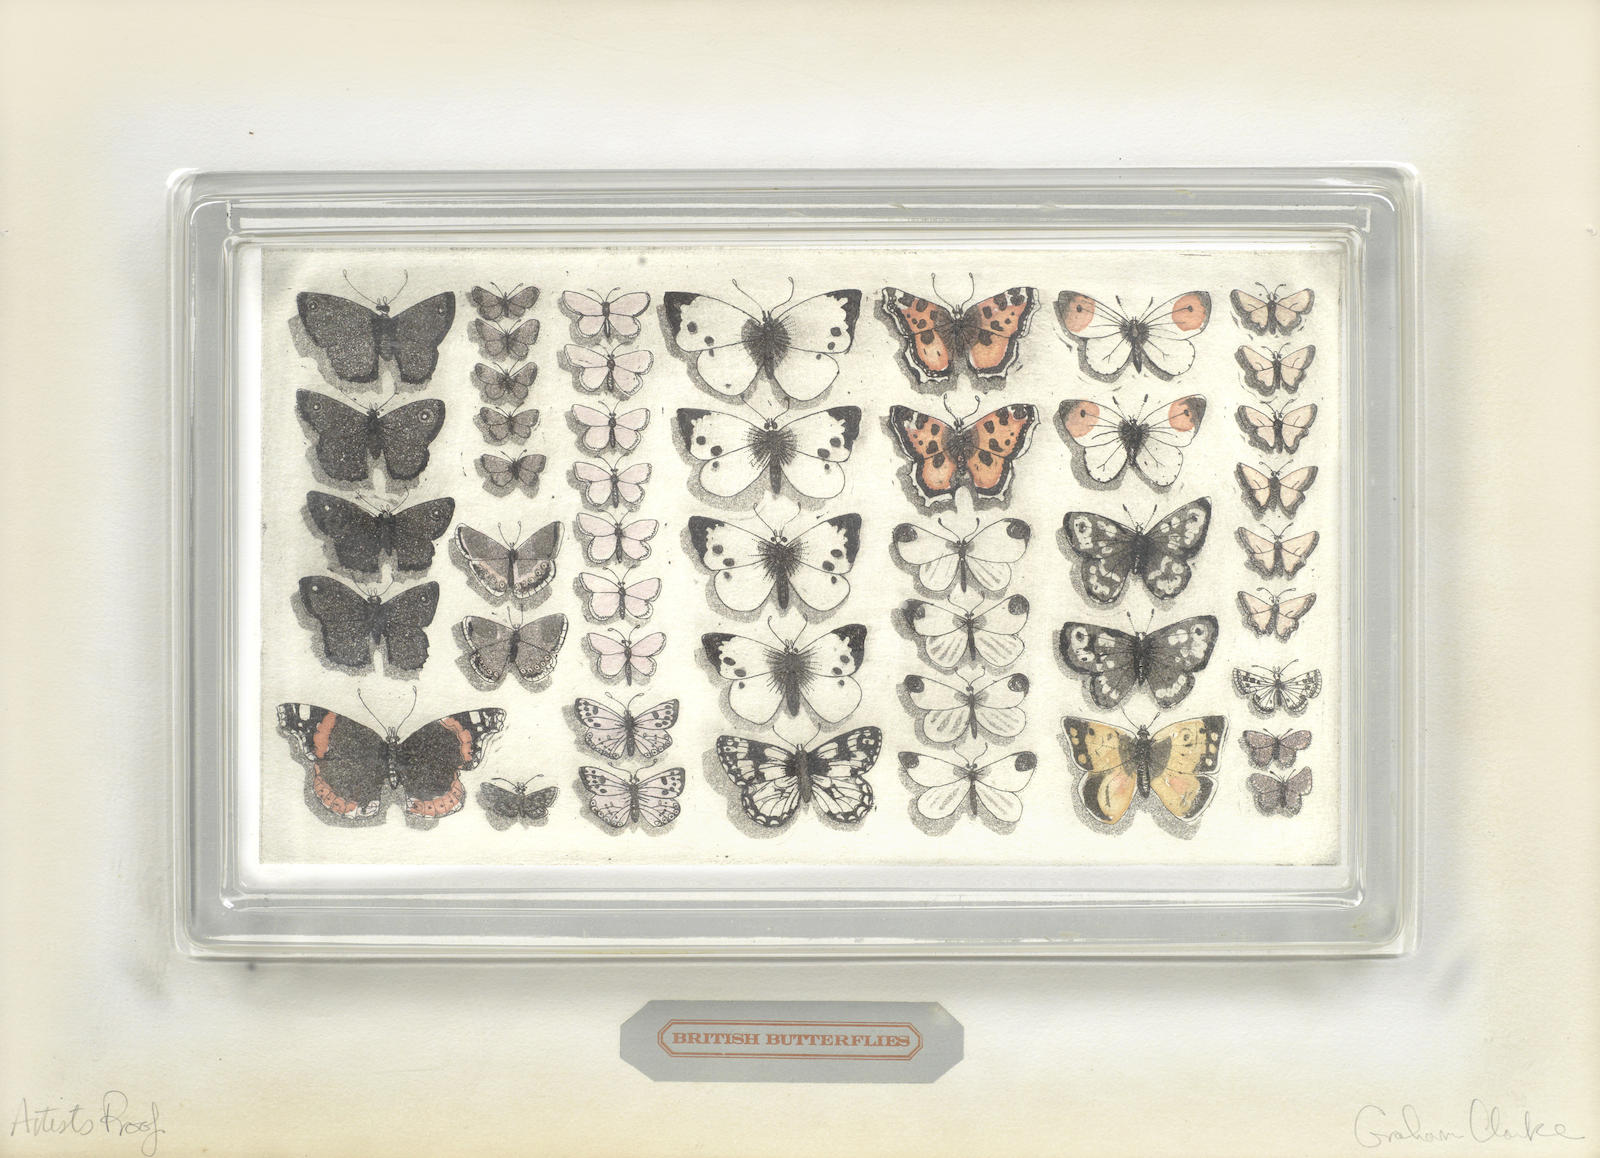 Graham Clarke-British Butterflies-